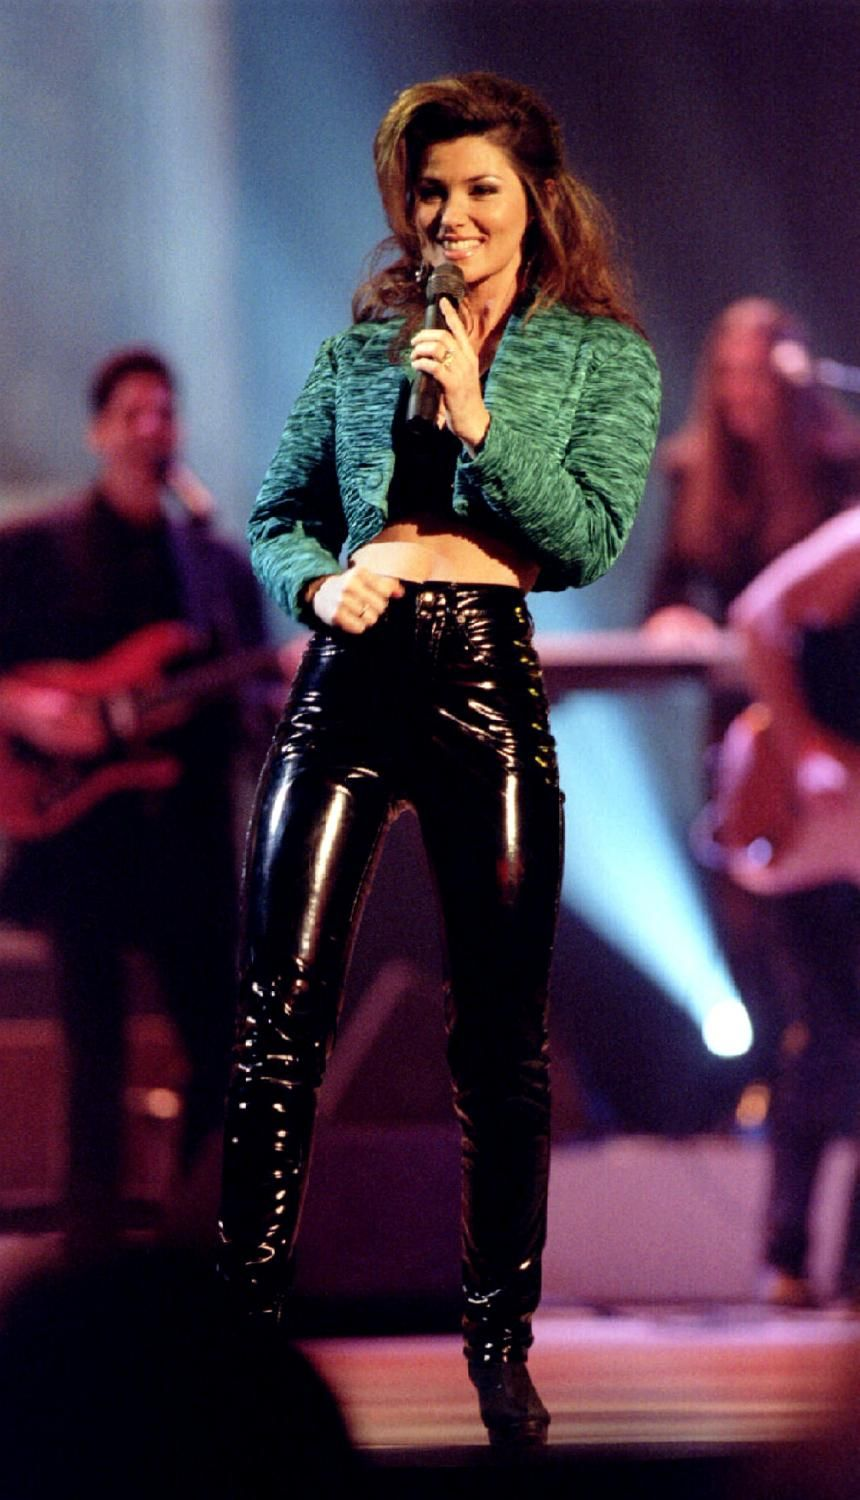 PHOTOS Shania Twain Is 48, Has Not Aged Since 1995